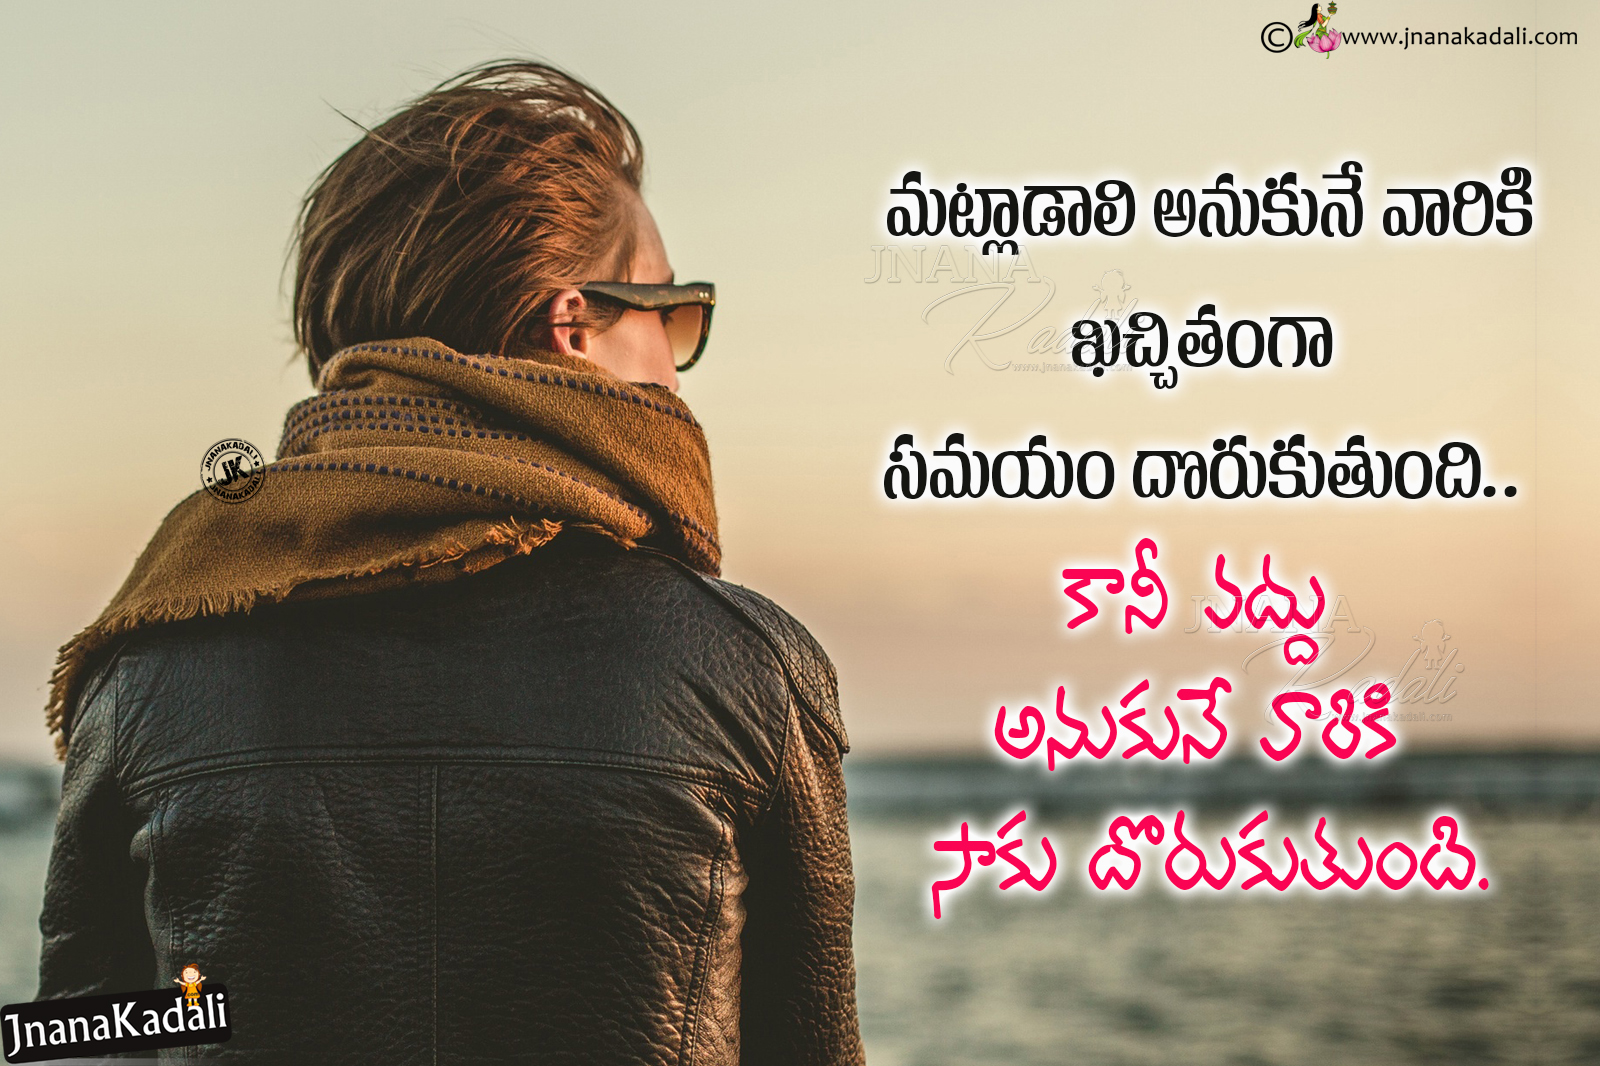 2019 dating quotes love 2018 telugu ✔️ and in best 한울 BTS